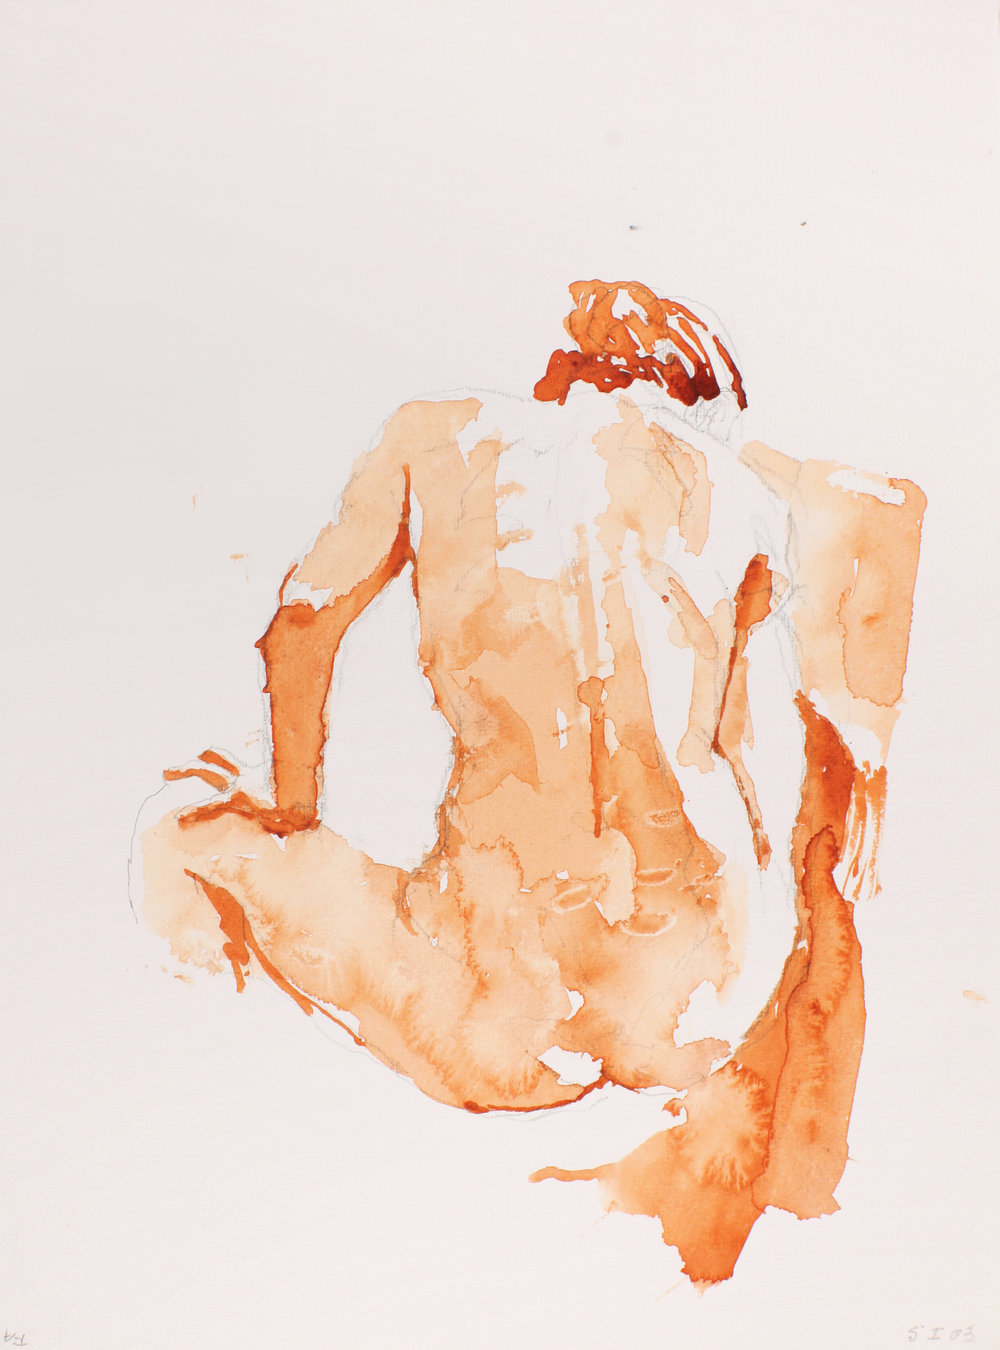 2003_Nude_with_Hand_on_Knee_from_Back_watercolour_on_paper_15x11in_WPF041.jpg